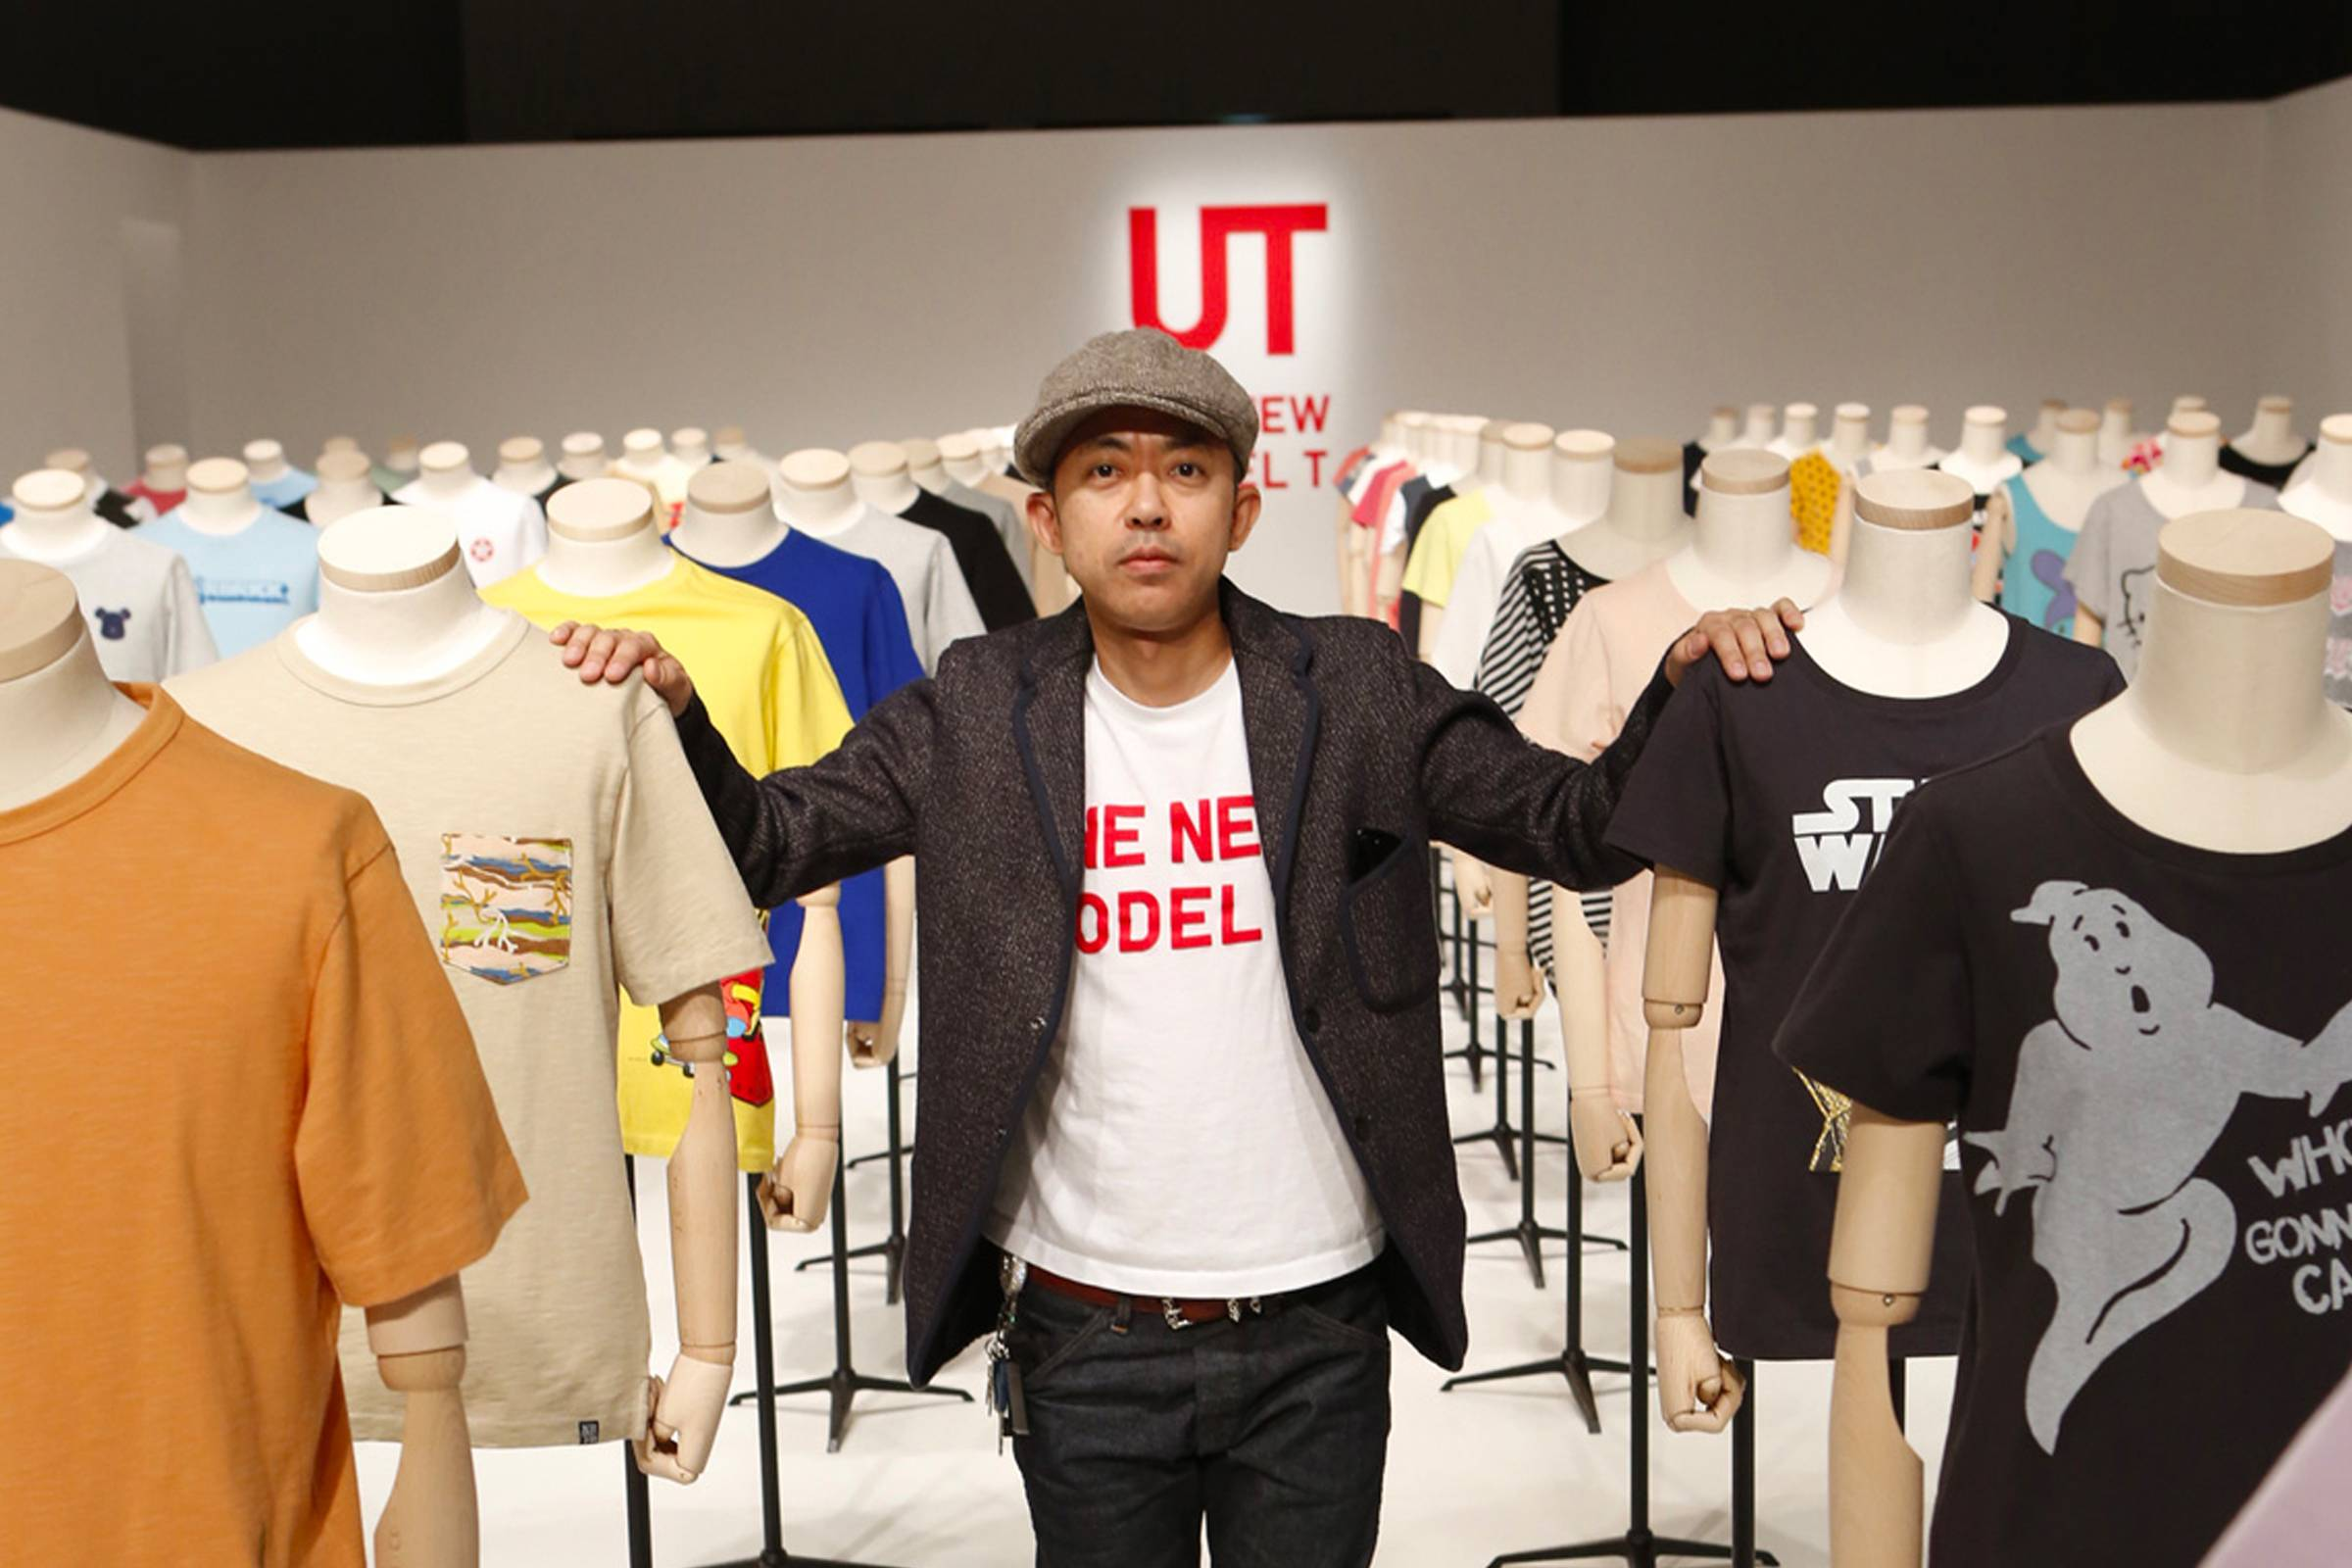 ac9e0924132 Simple Made Better  A Selection of Notable Uniqlo Collabs - Best ...